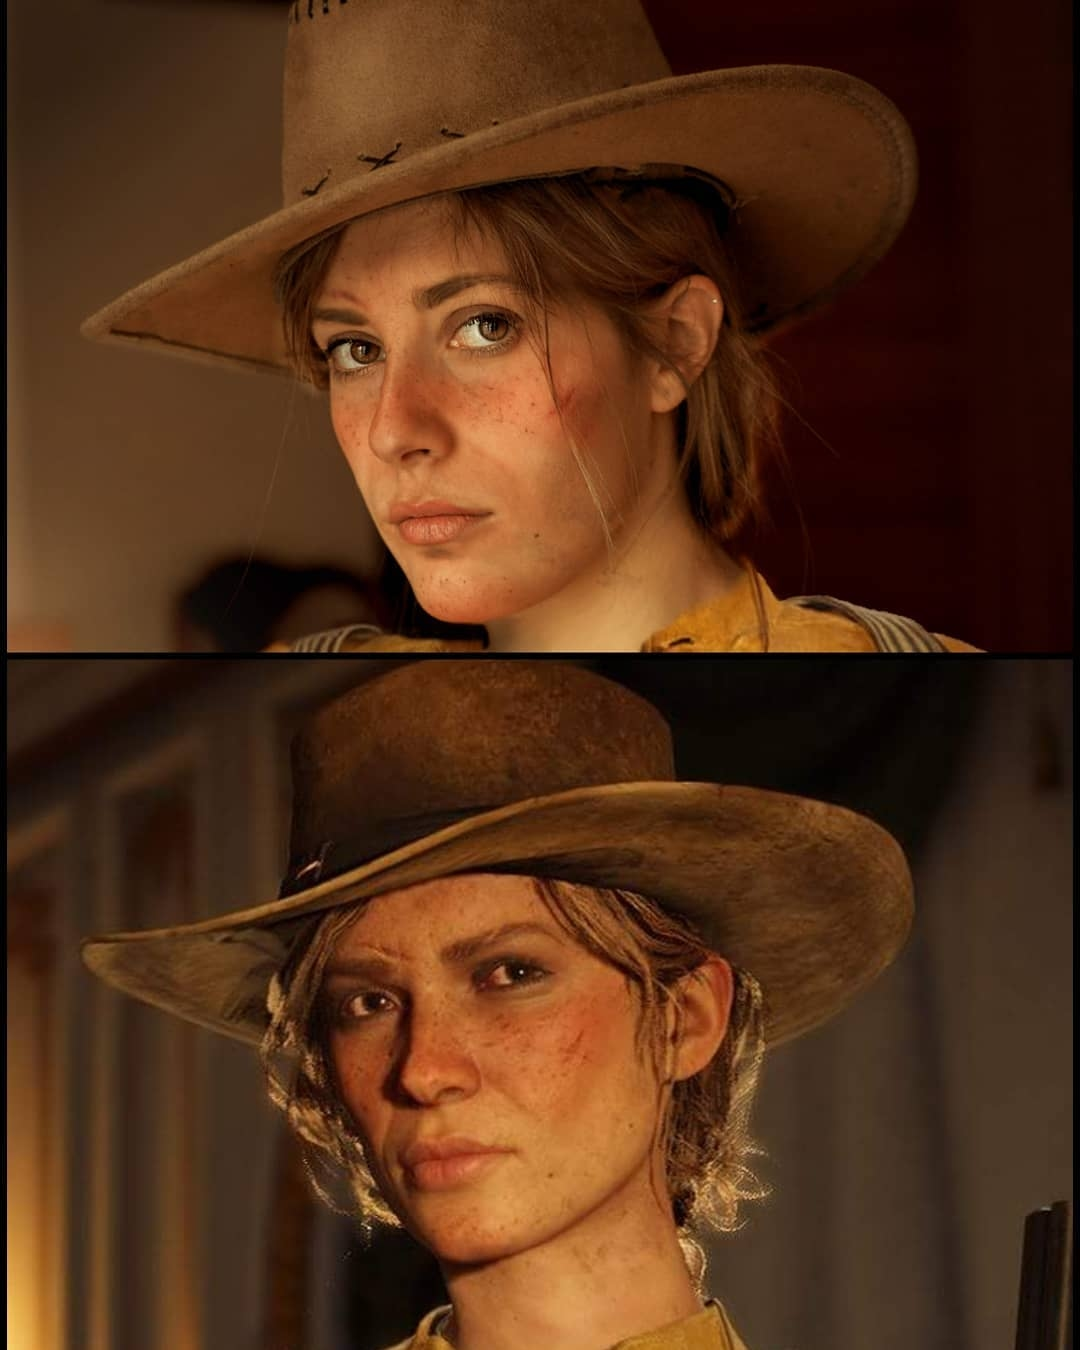 4b70d6cdfff9e Spanish cosplayer falconess  makes for a spot-on Sadie Adler in this  faithful recreation of the widow turned outlaw. (Source  falconess  on  Instagram)